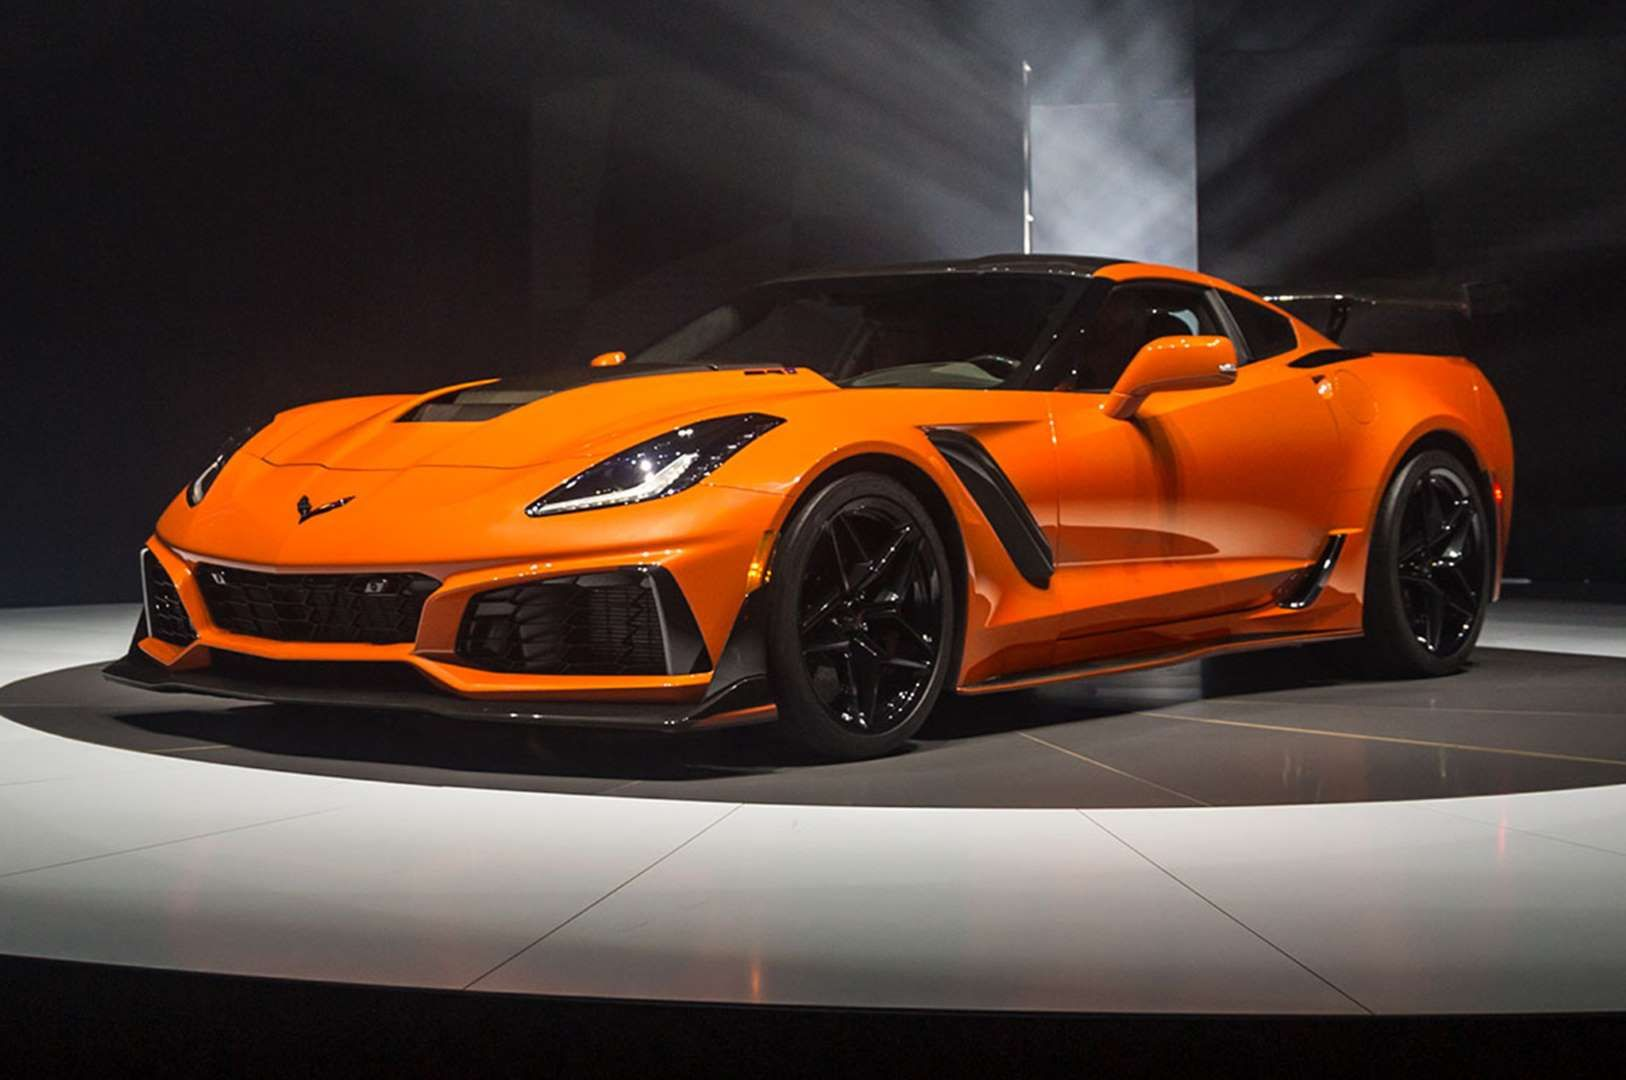 2019 Chevrolet Corvette ZR1 front side view on stage Motor